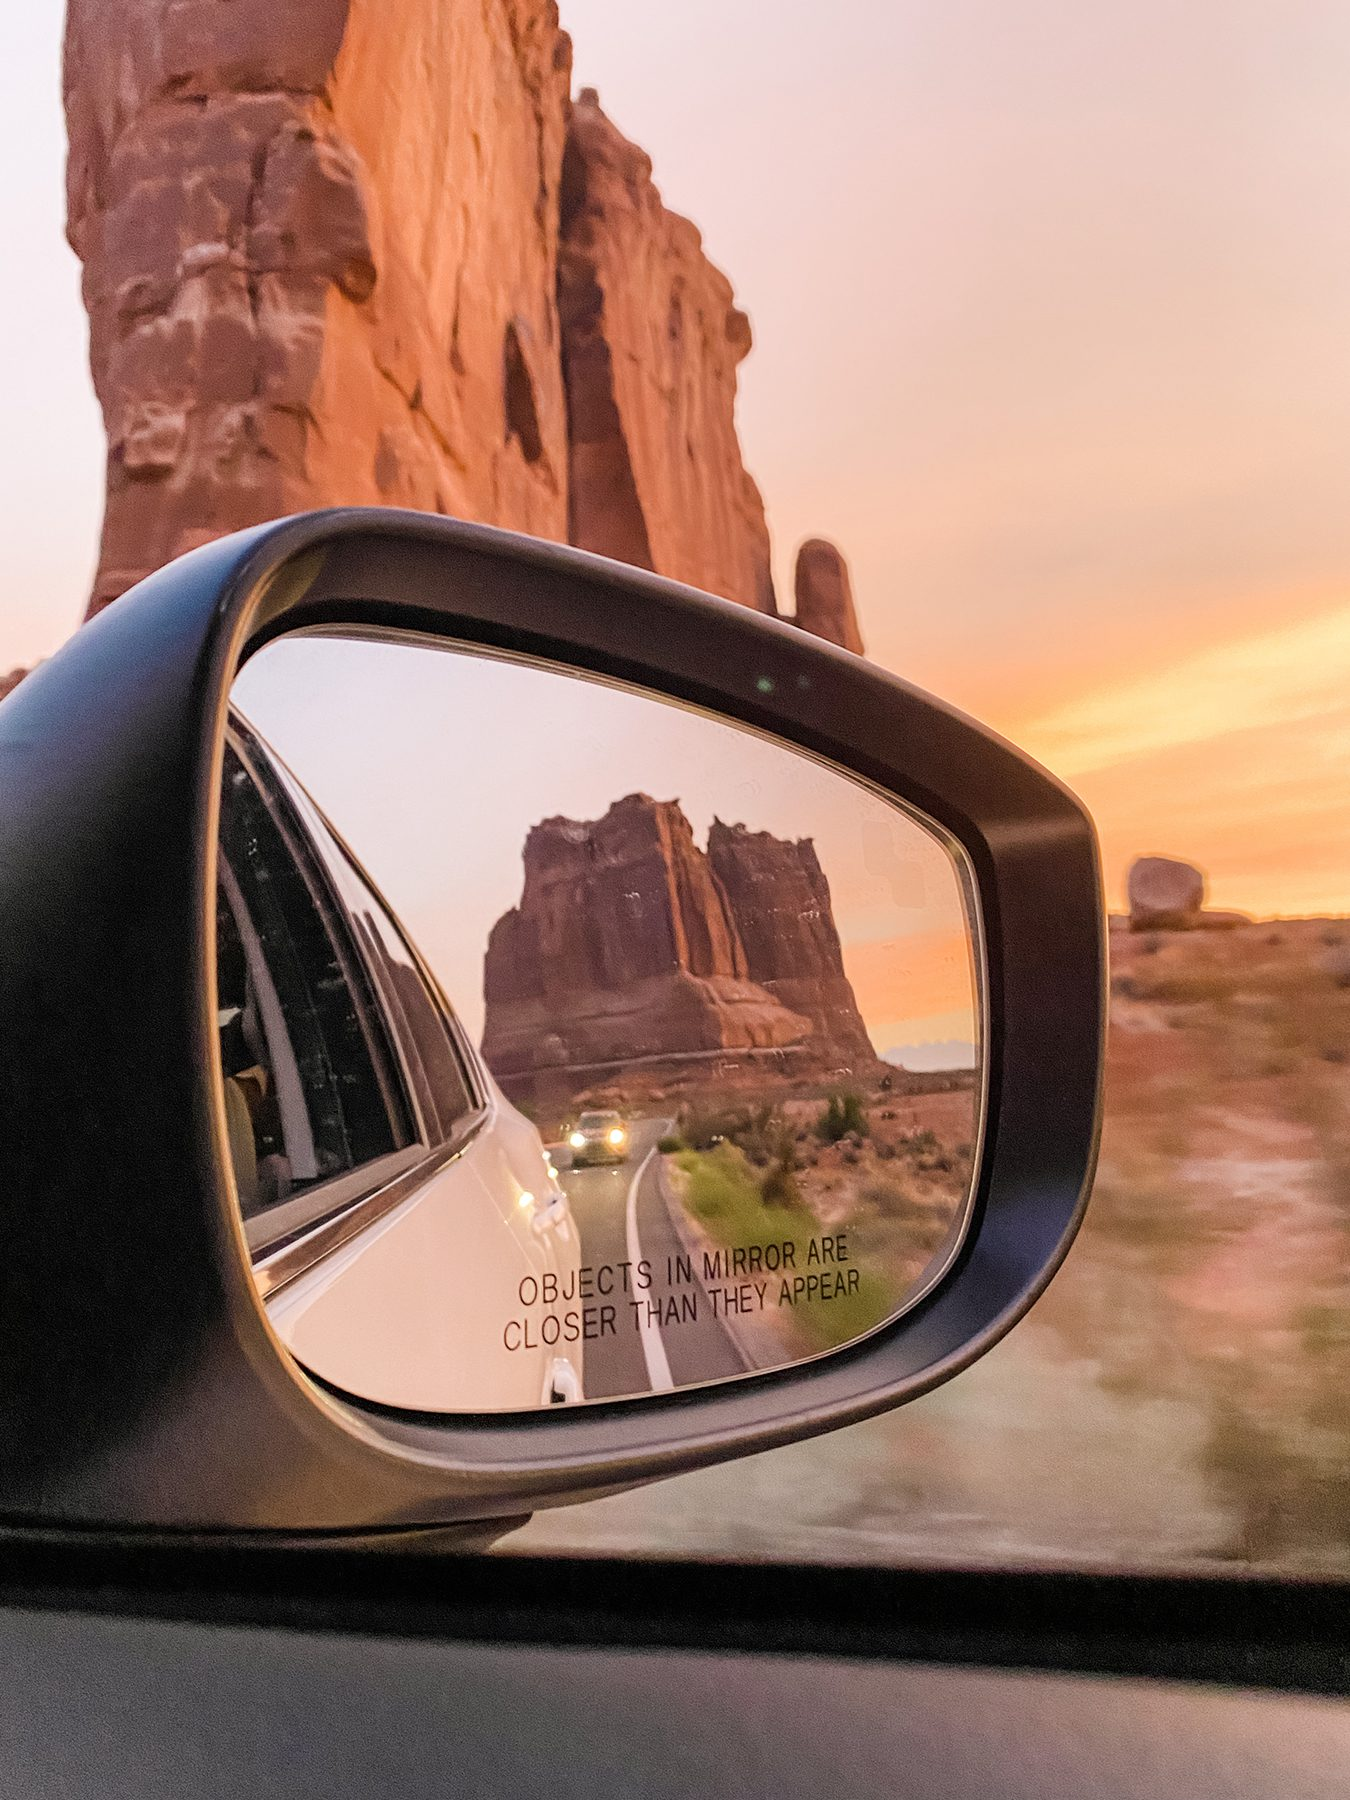 Grand canyon in the review mirror of a car